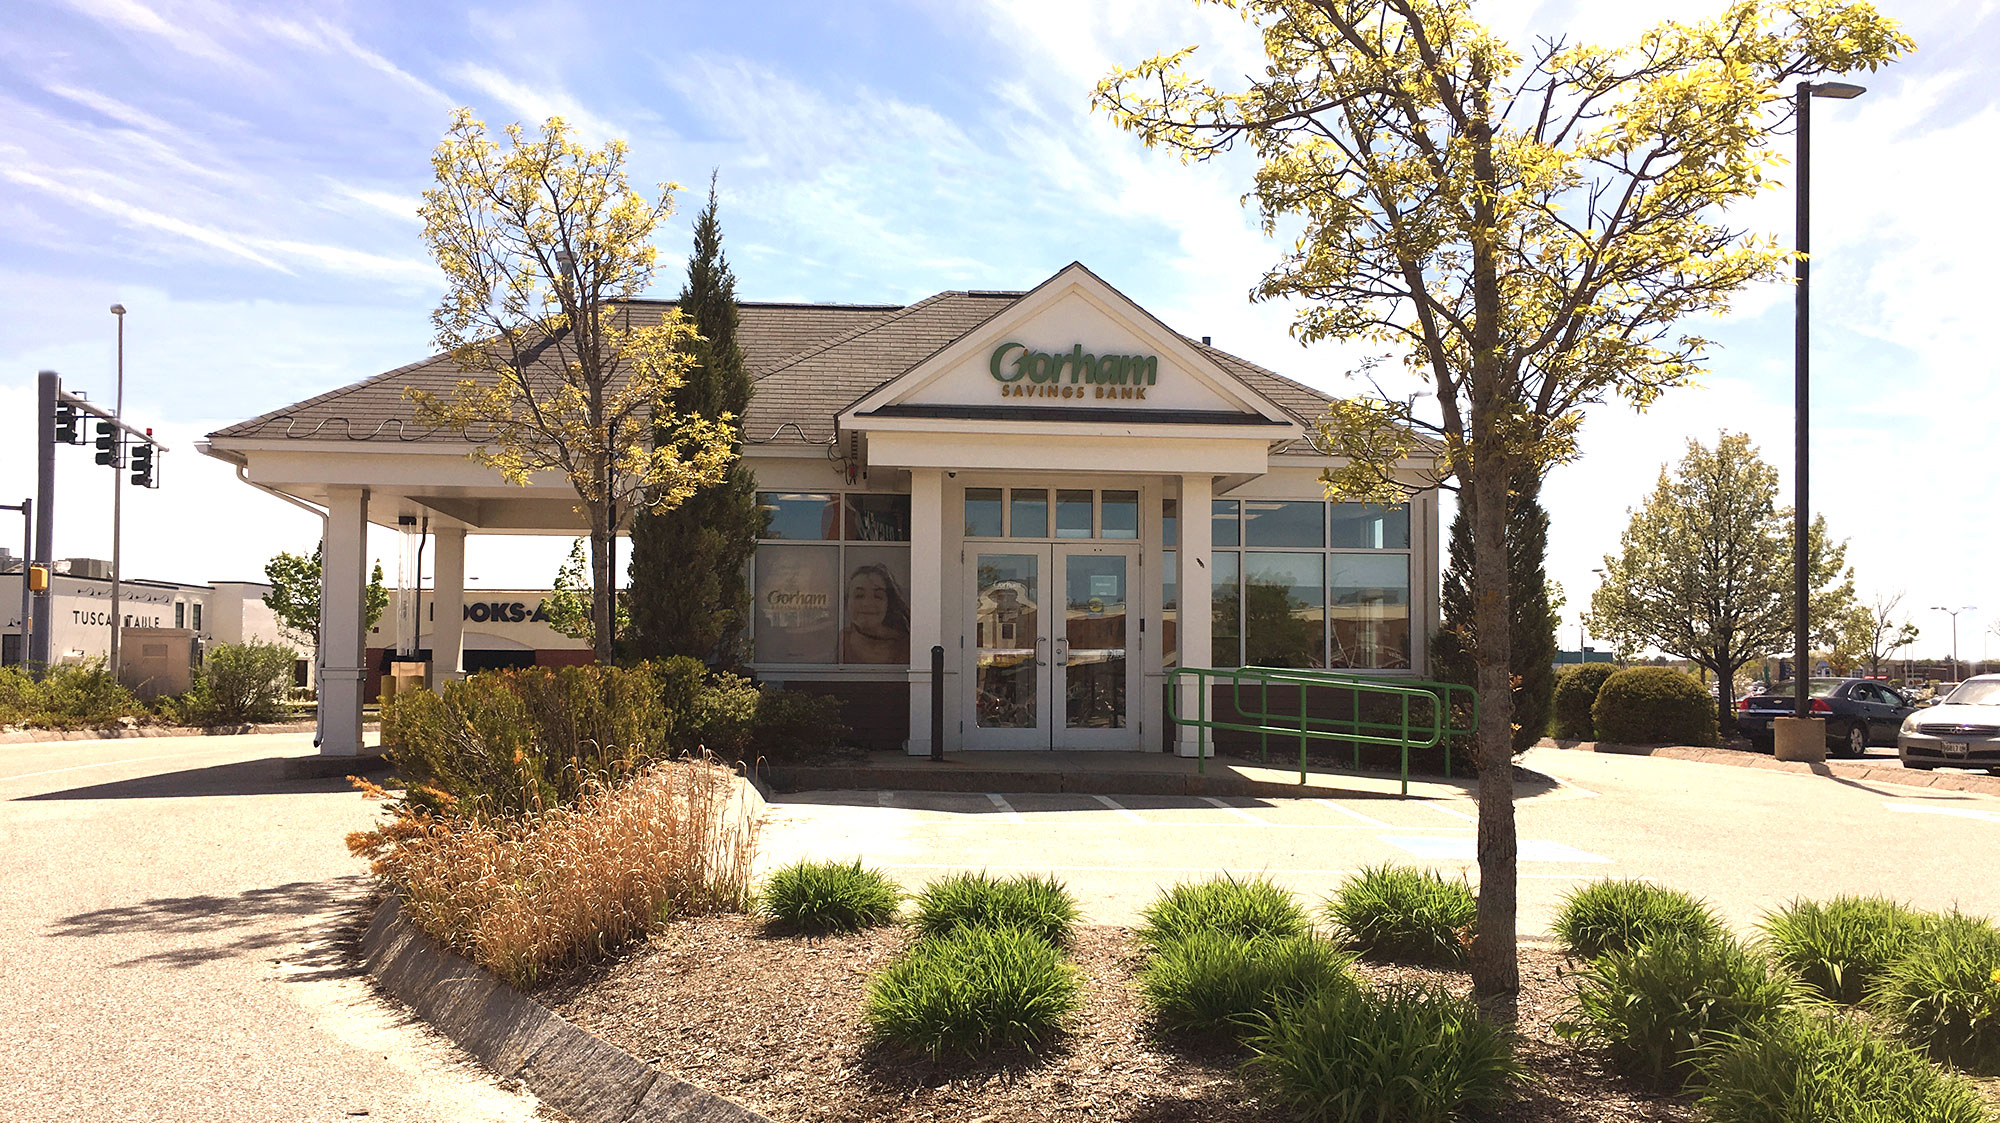 Gorham Savings Bank South Portland Location outside during the day